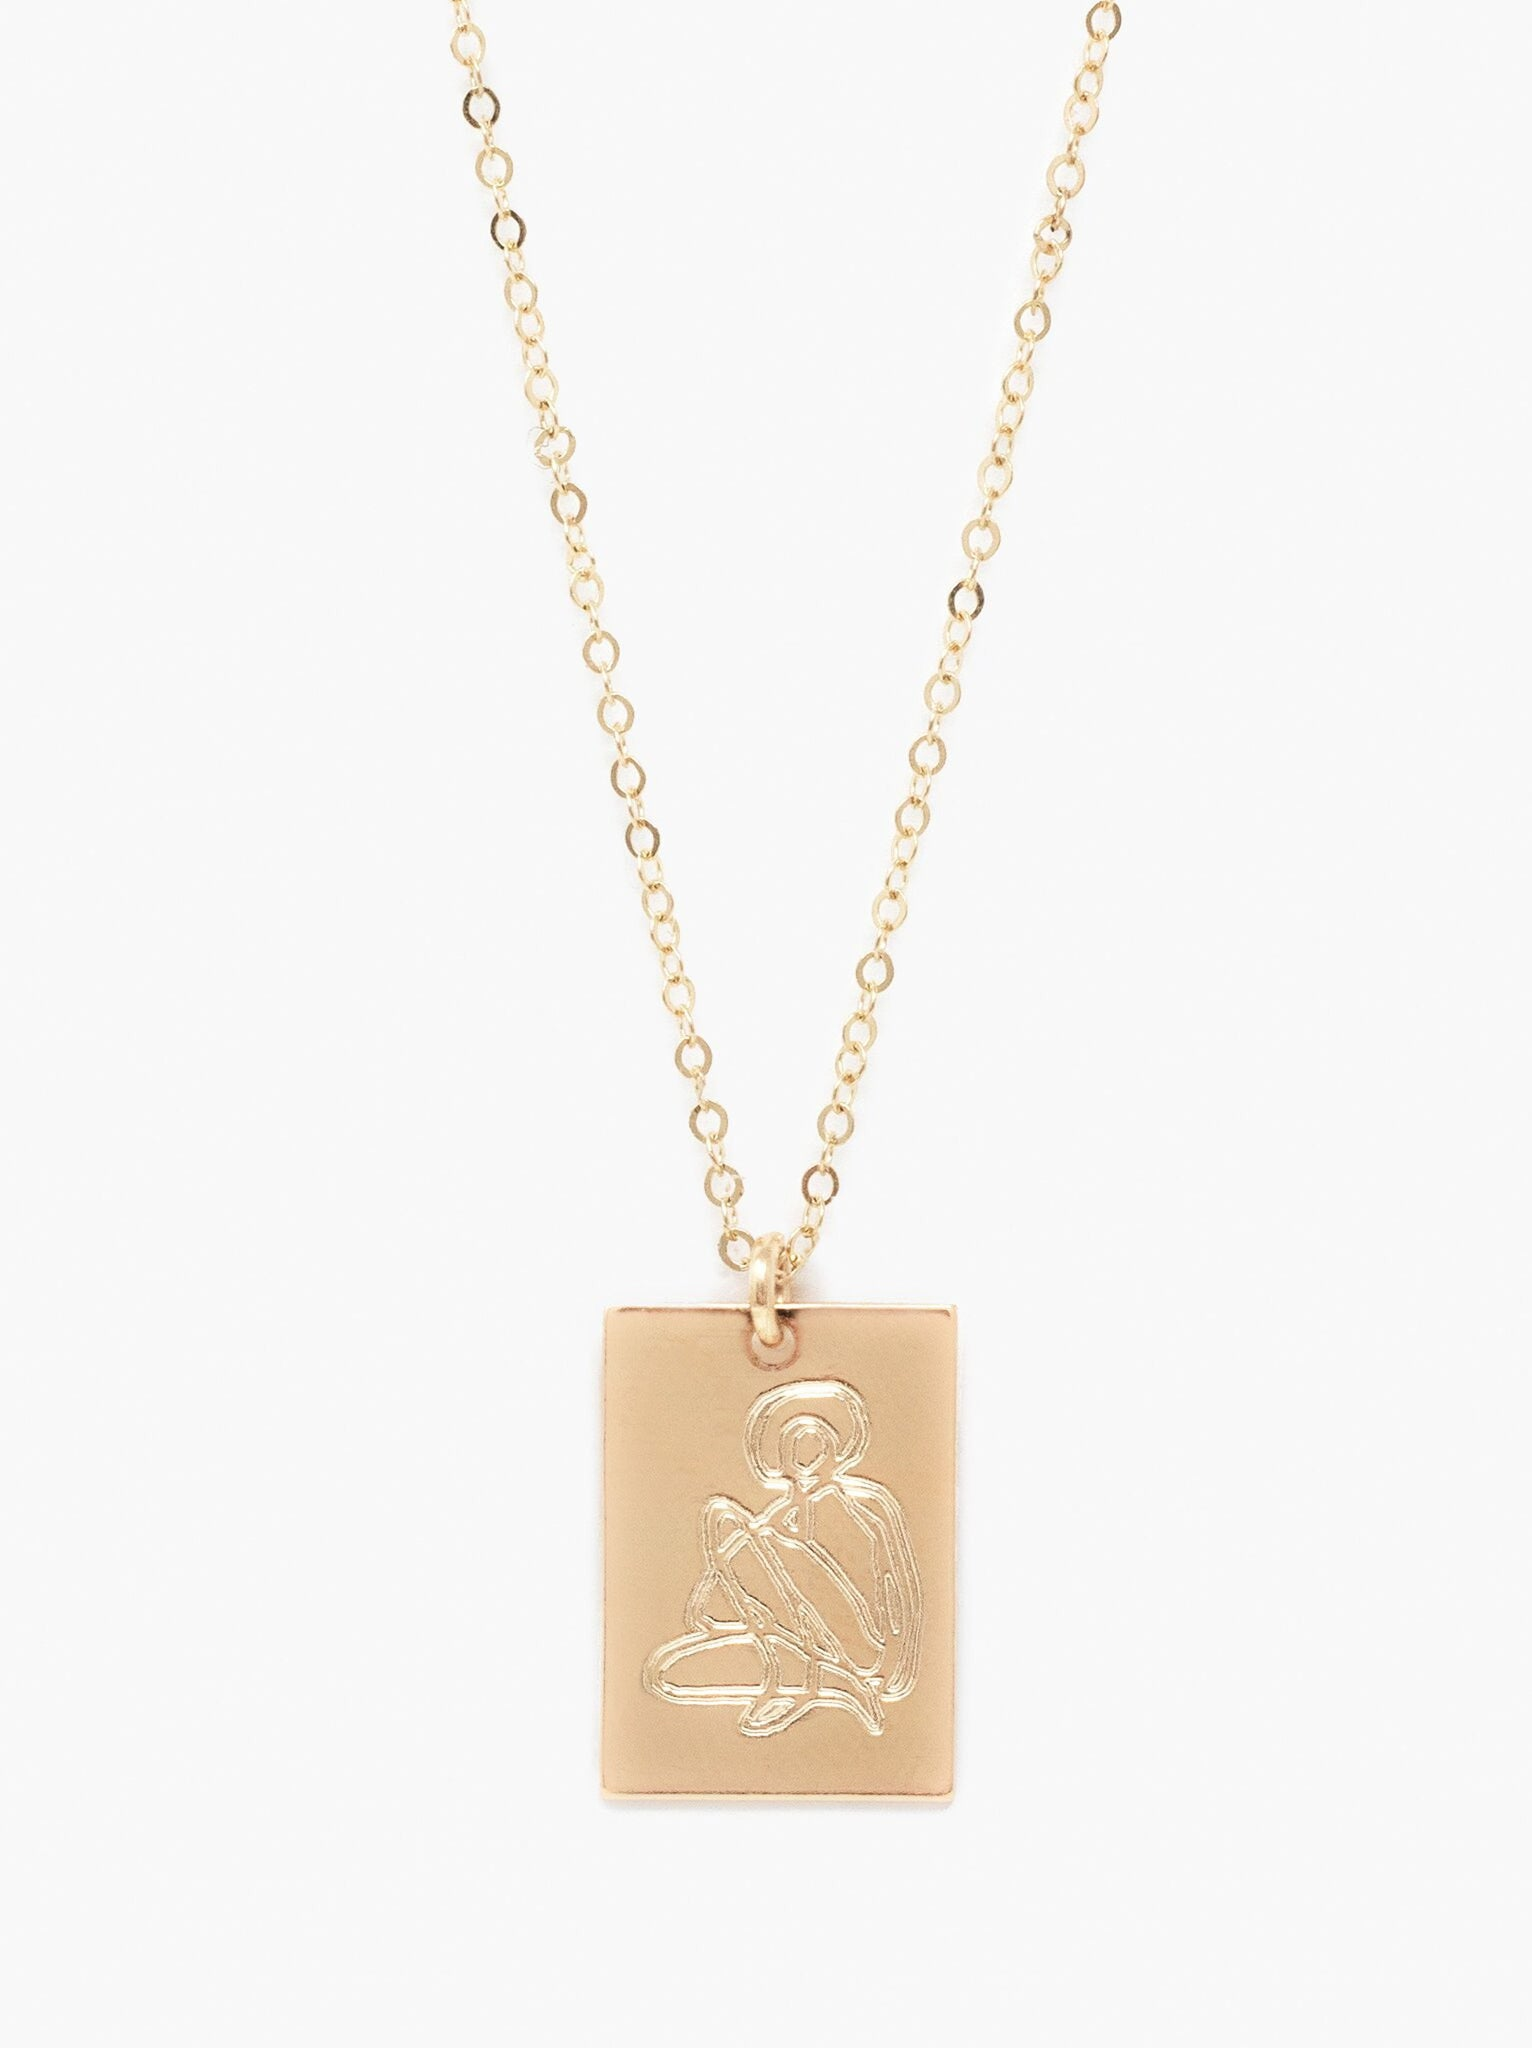 She's Worth More Portrait Tag Necklace